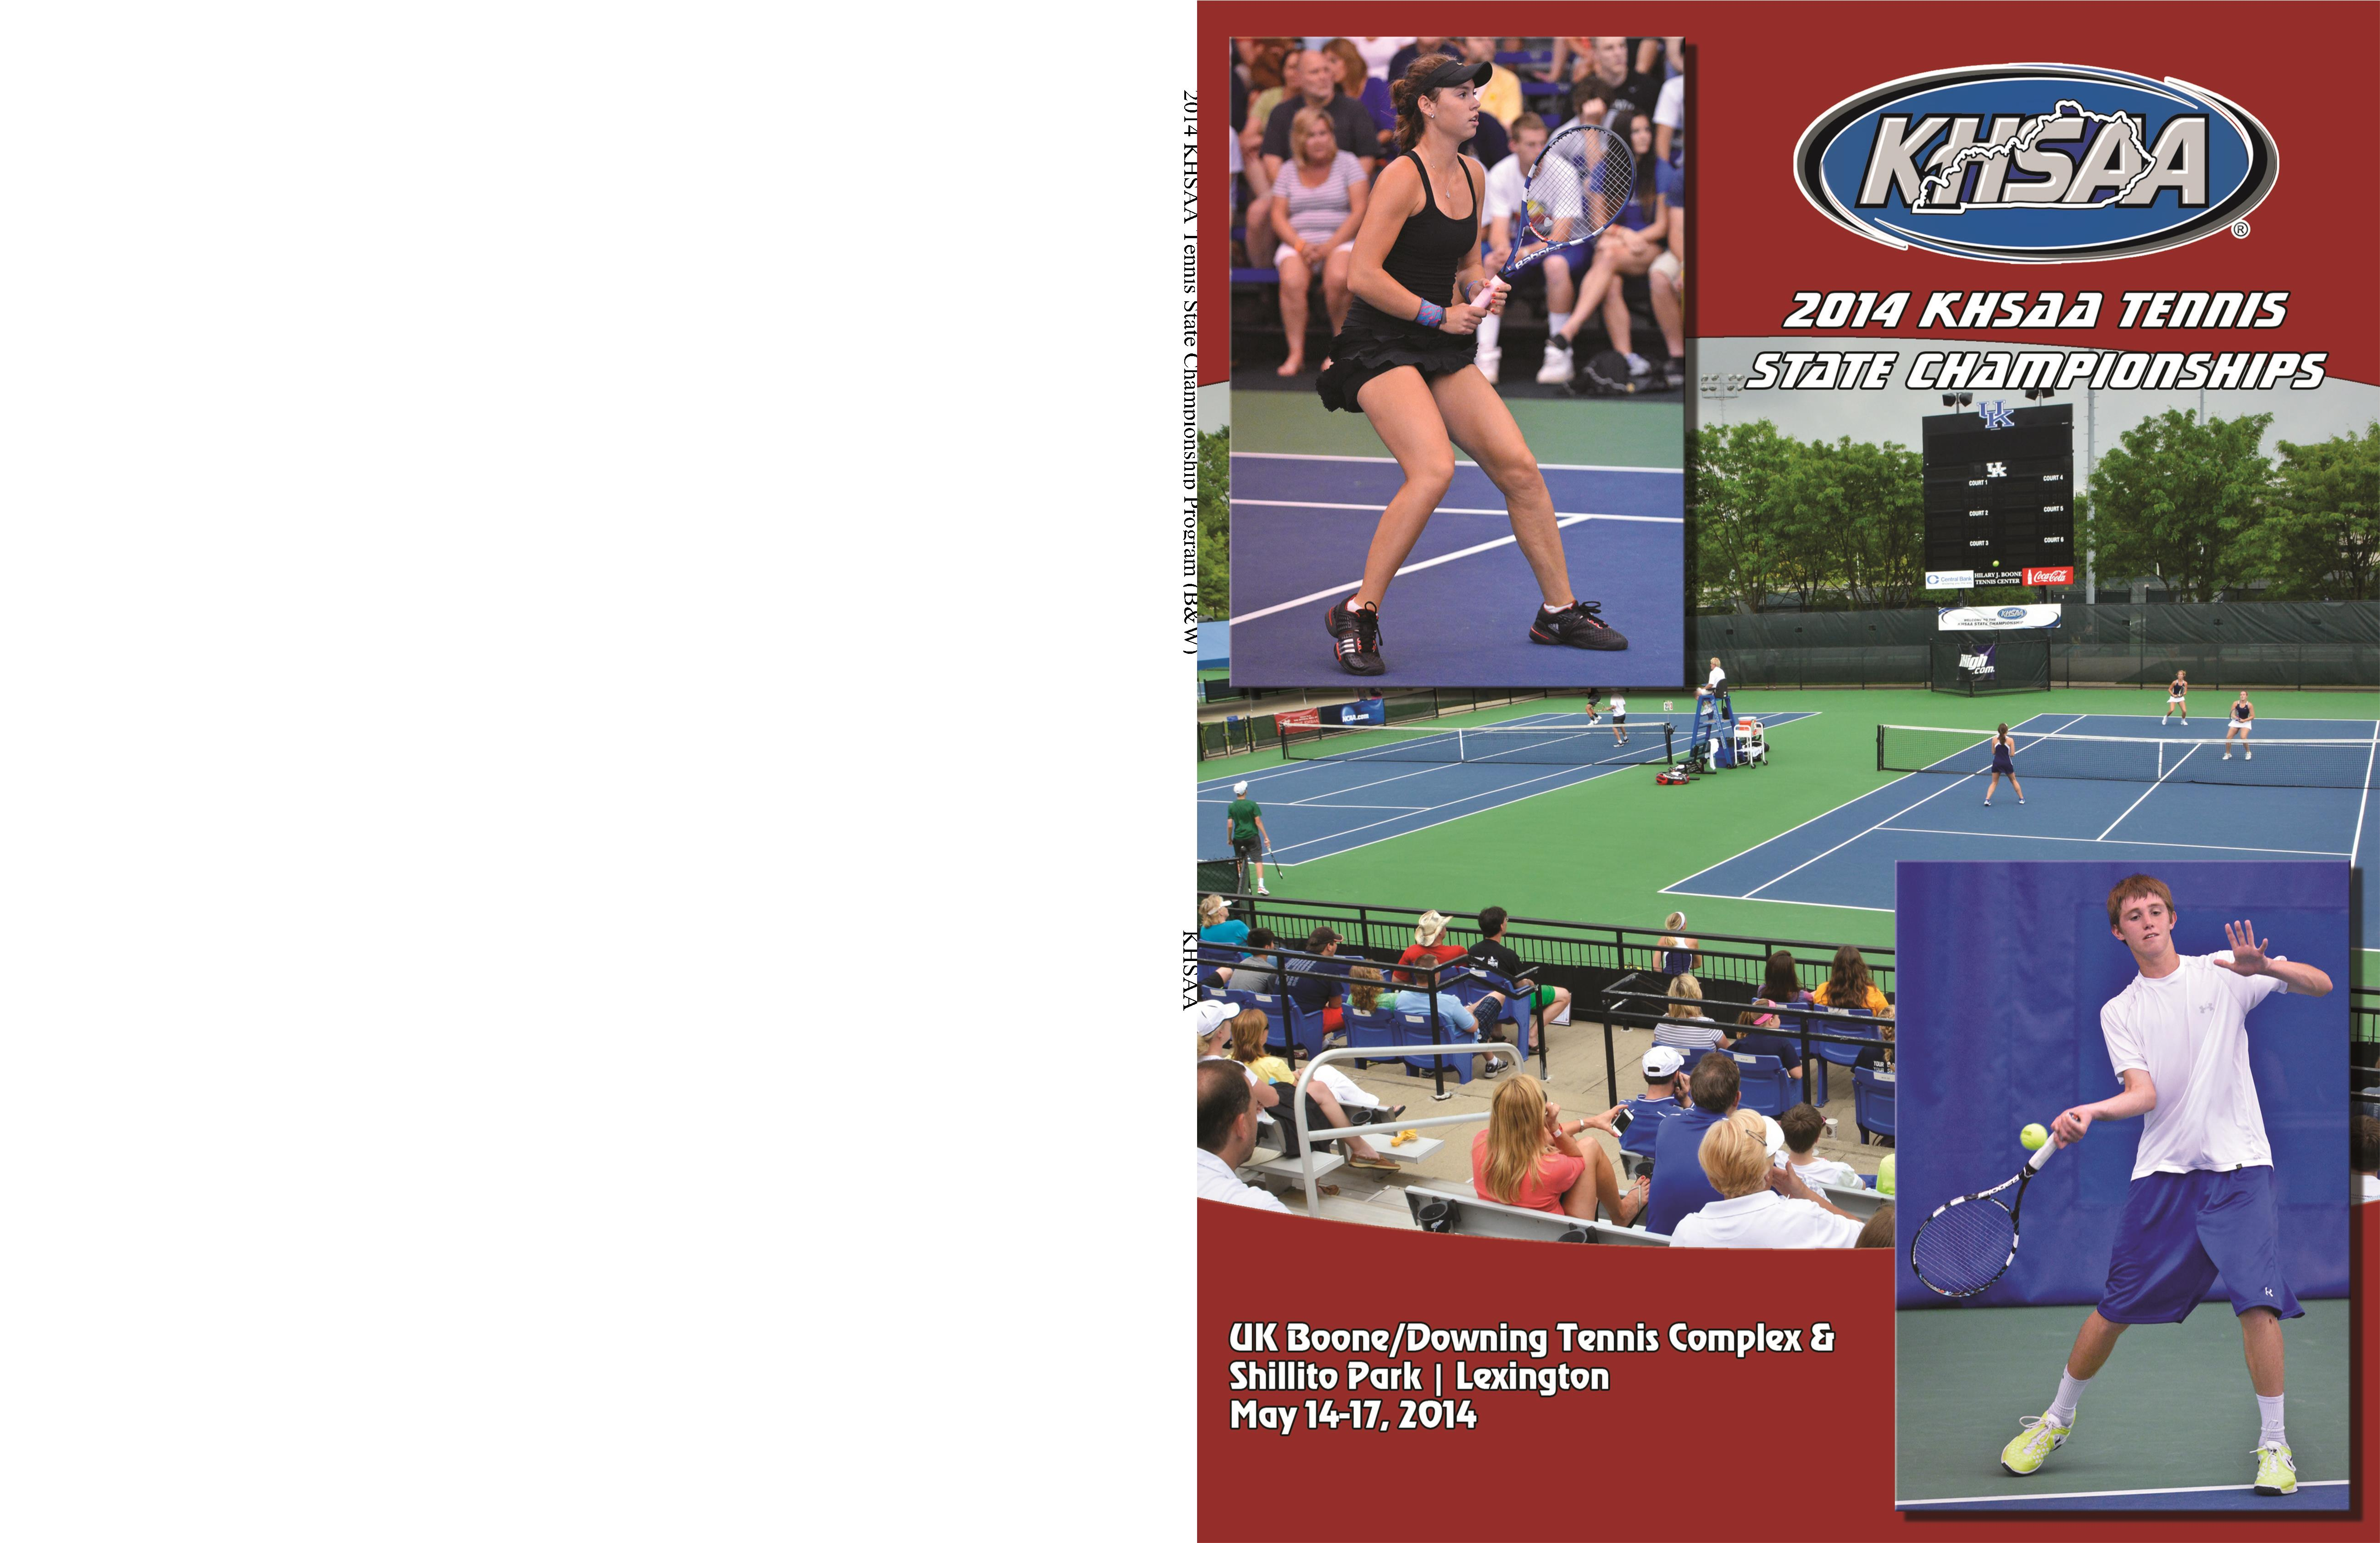 2014 KHSAA Tennis State Championship Program (B&W) cover image